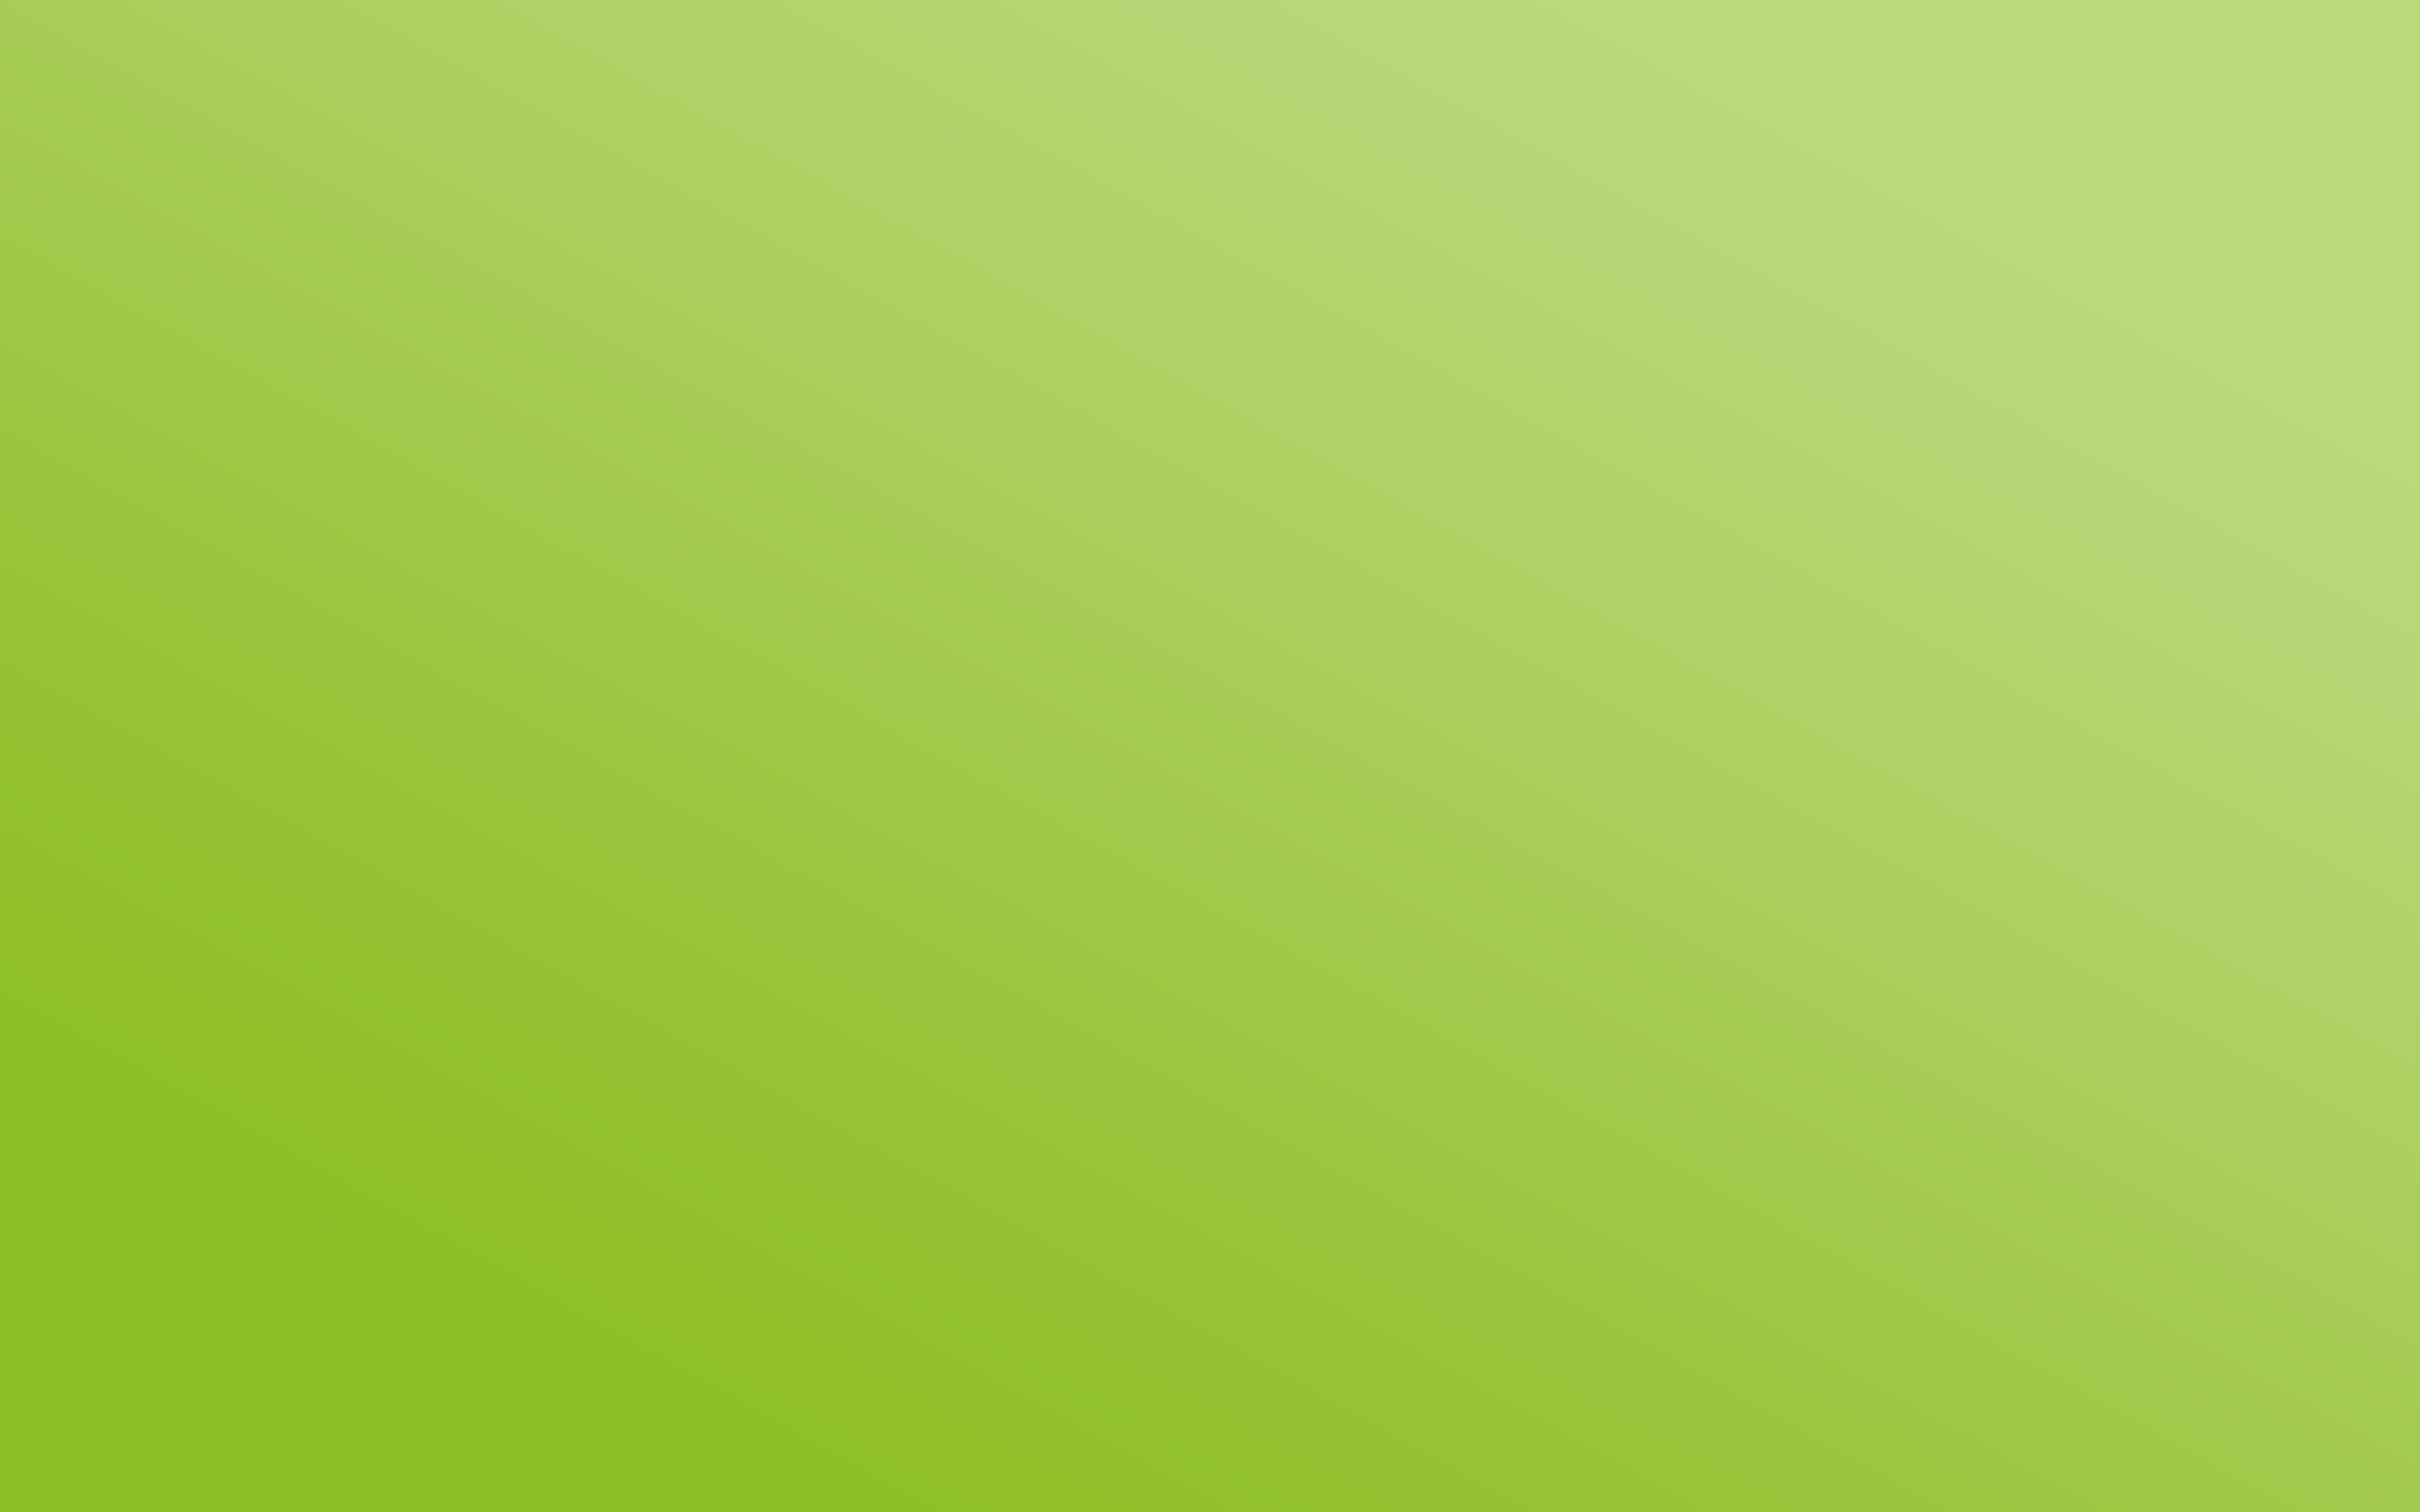 2560x1600  Wallpaper light green, solid, color